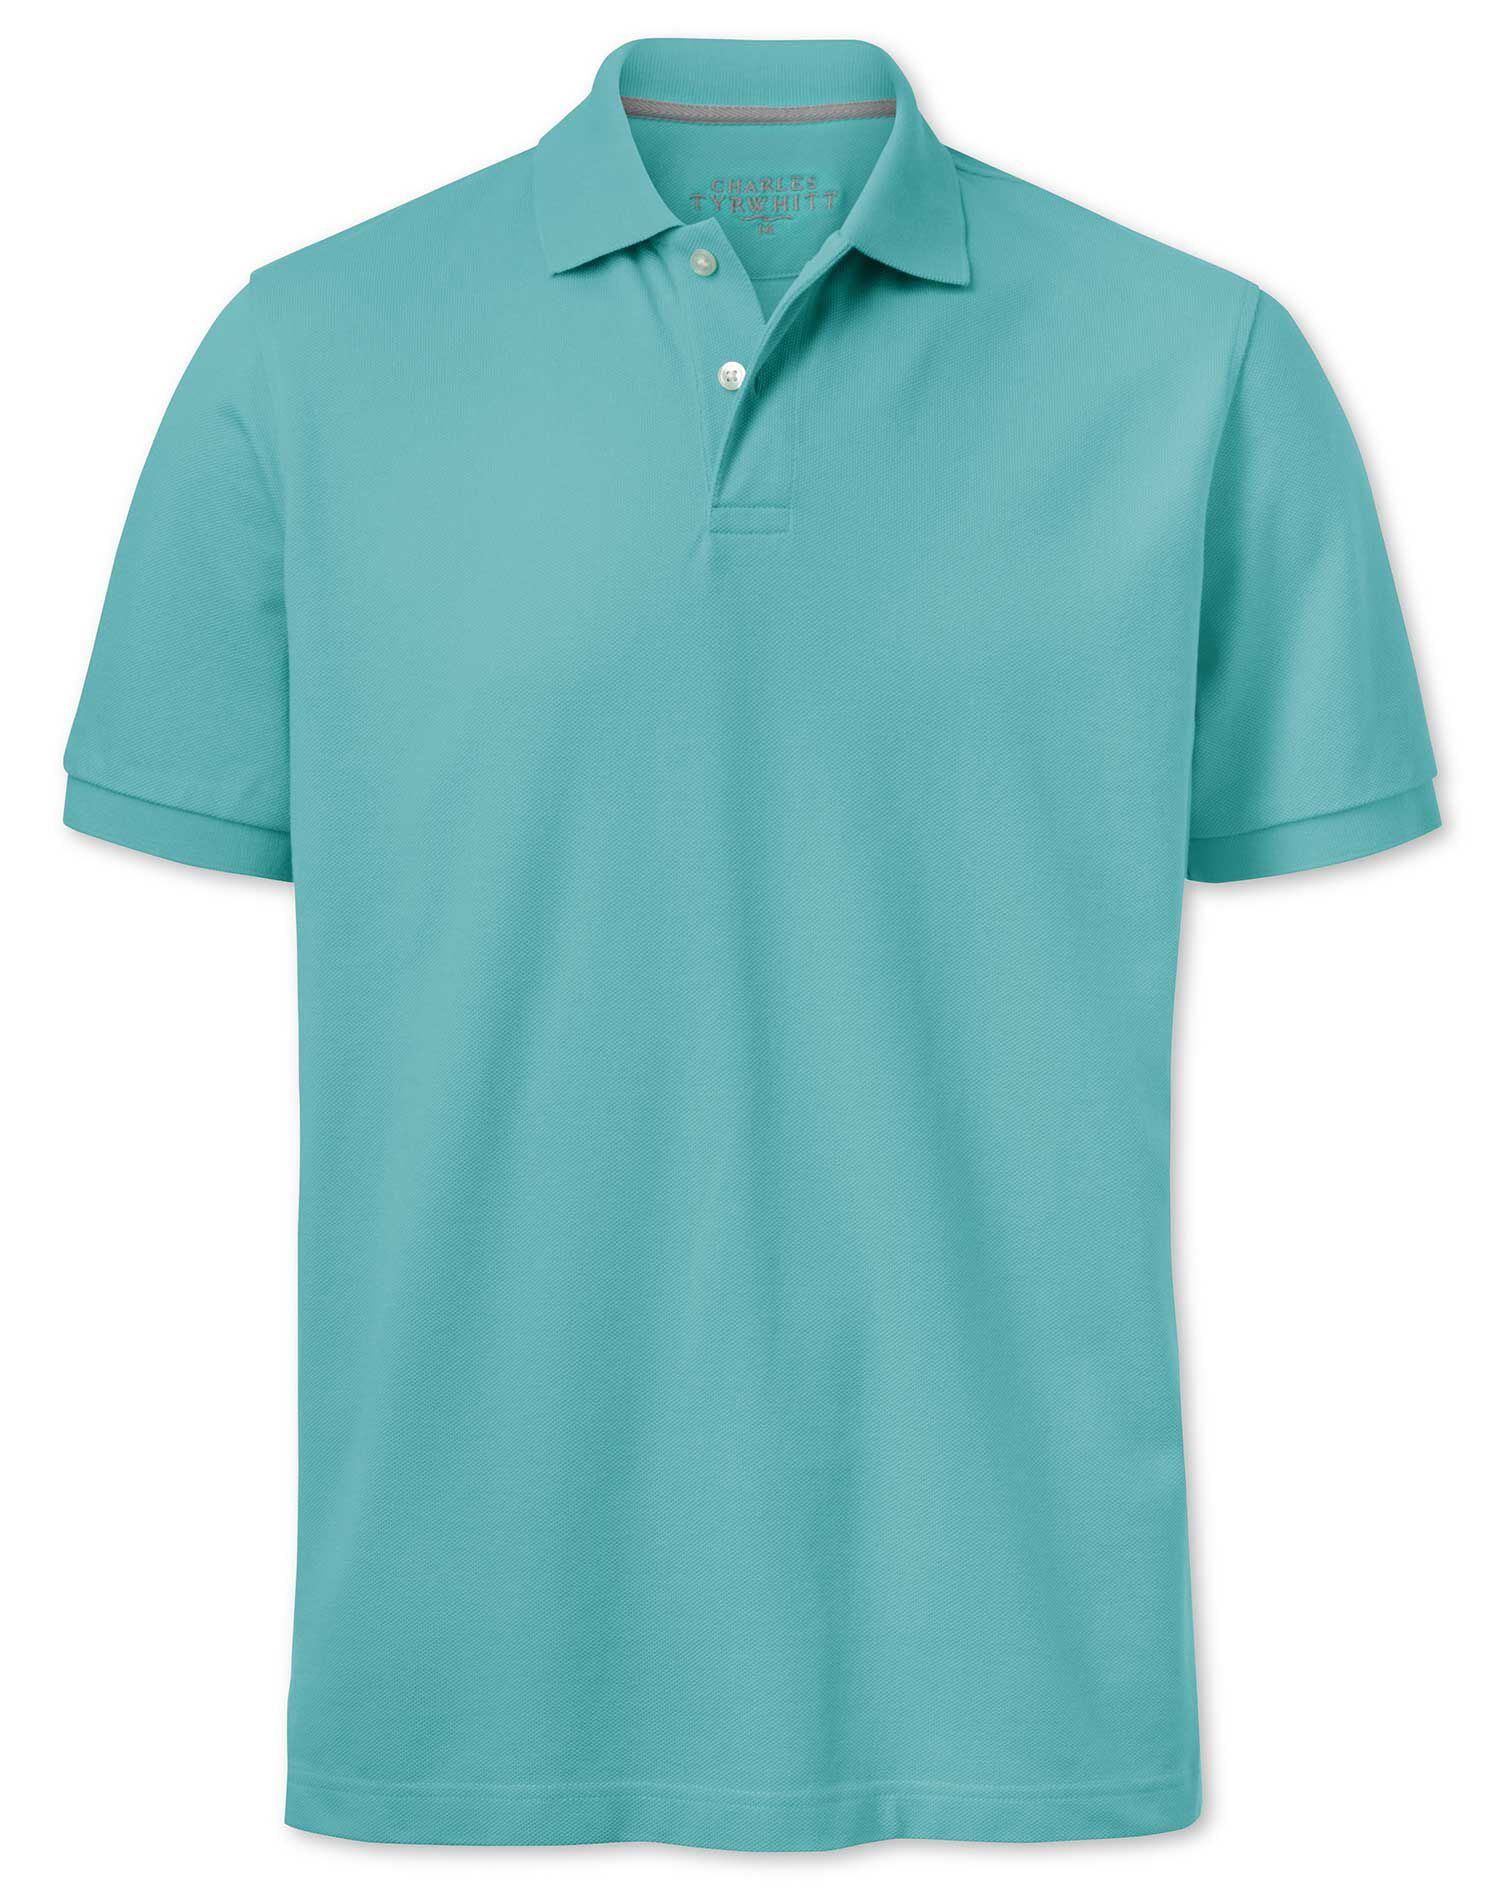 Turquoise Pique Cotton Polo Size Large by Charles Tyrwhitt